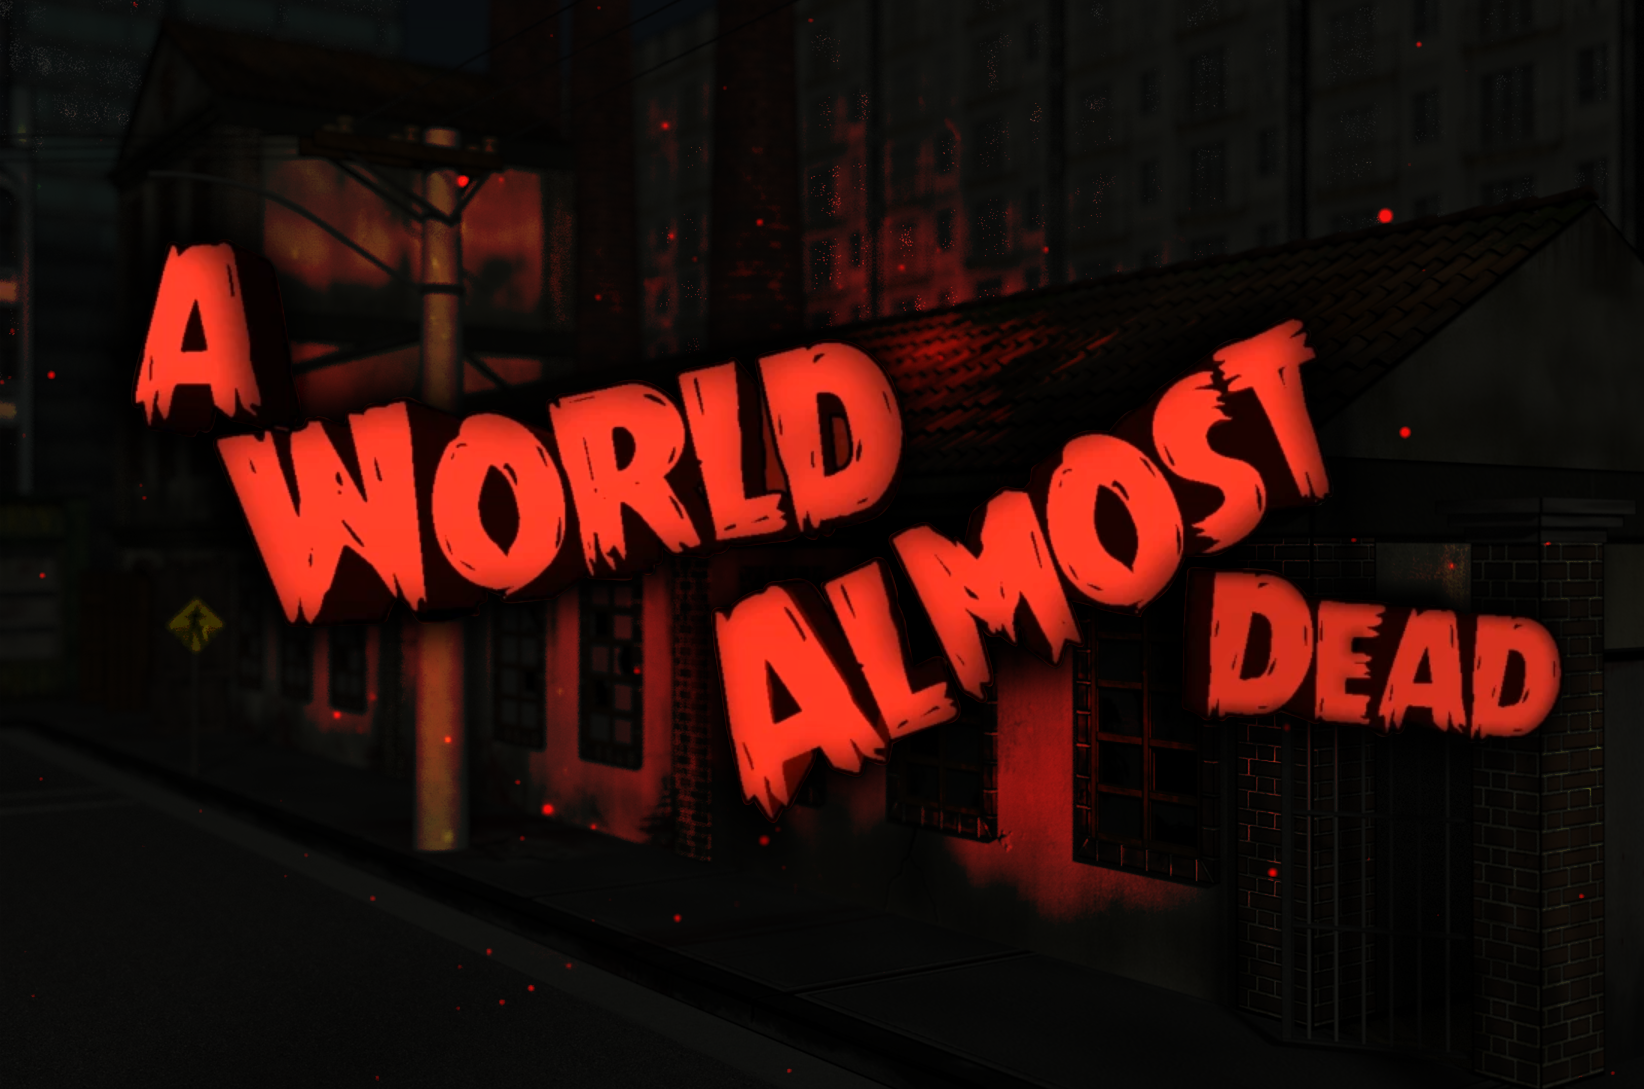 A World Almost Dead 2- Paulo Jr. CG